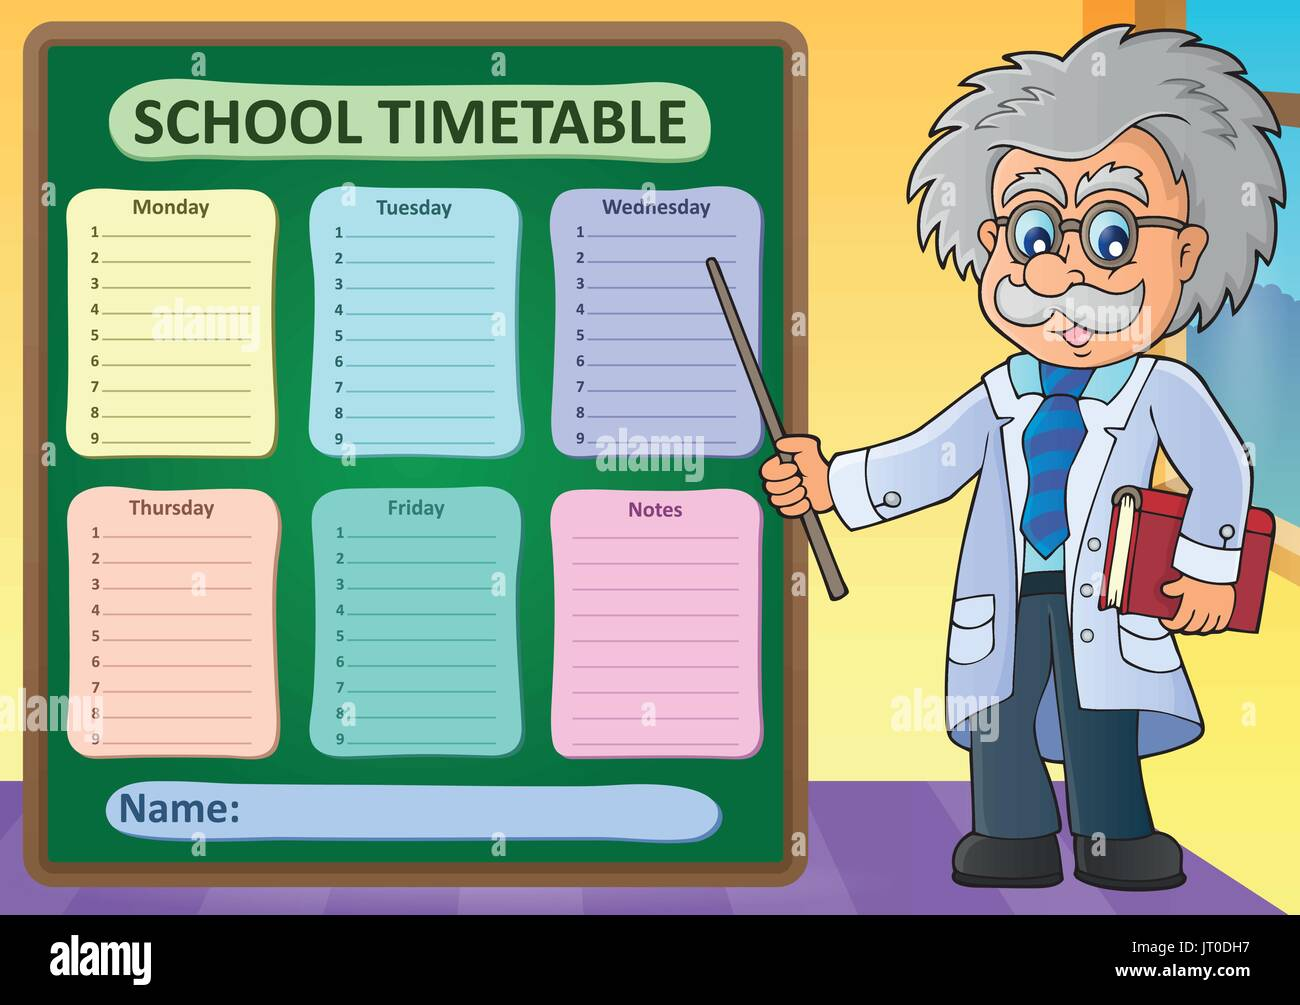 Weekly school timetable design 1 eps10 vector illustration – School Time Table Designs